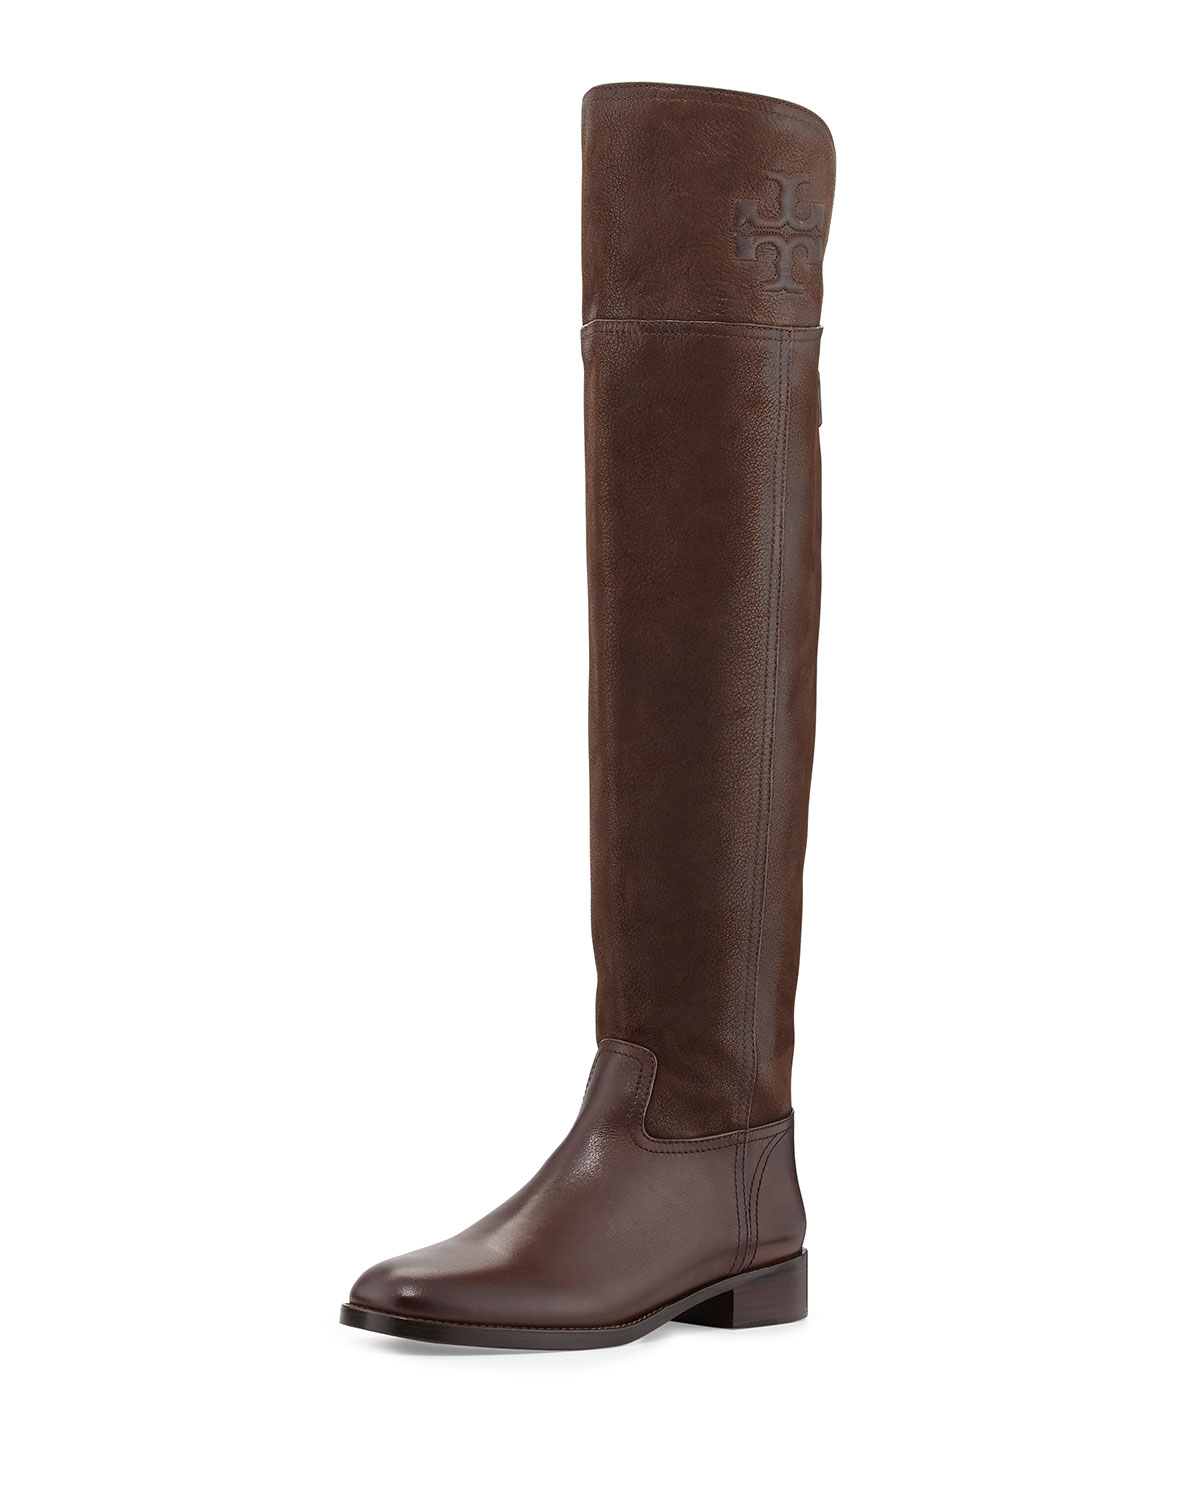 Tory burch Simone Over-The-Knee Logo Boot in Brown | Lyst